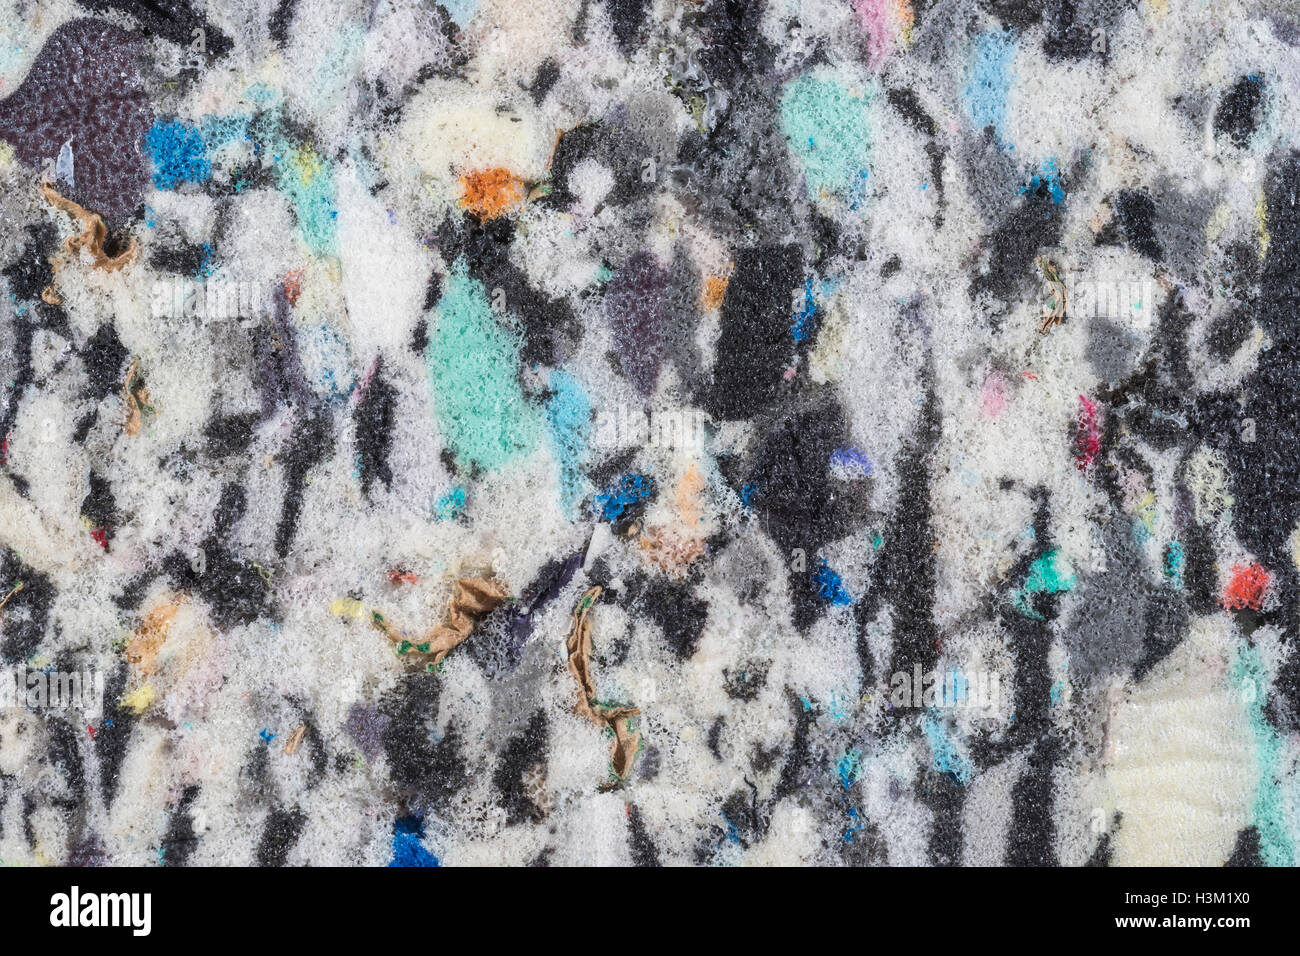 Abstract with Chagall / Kandinsky-esque feel - chaos, mental illness emotional stress, needle in a haystack, shattered, - Stock Image